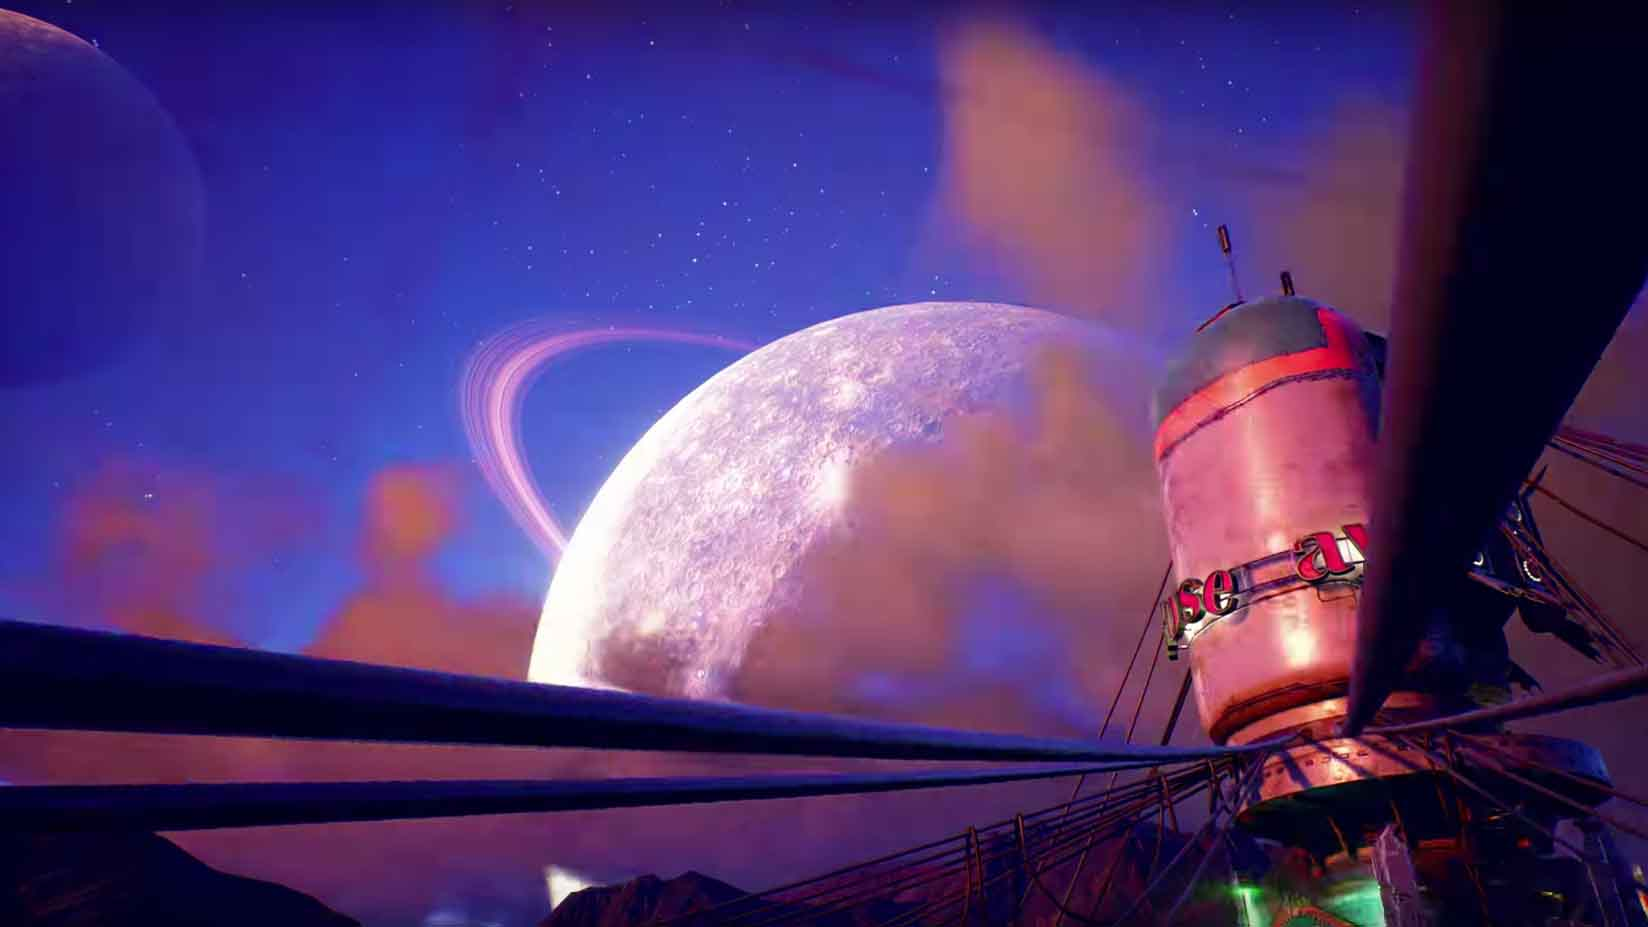 Obsidian The Outer Worlds space RPG